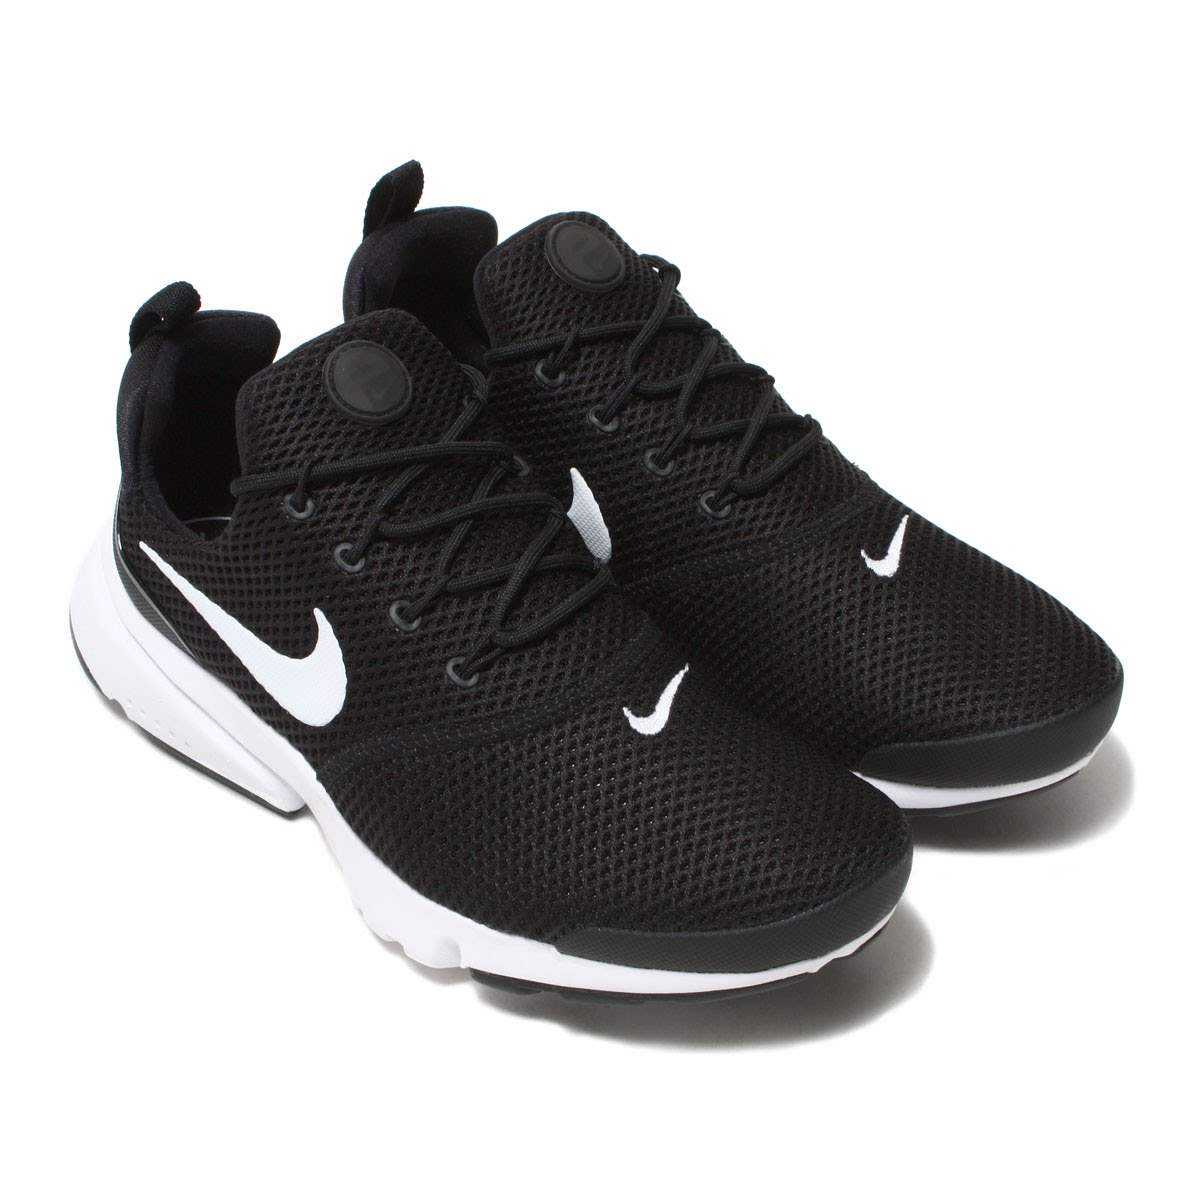 more photos 67859 c6bc1 NIKE WMNS PRESTO FLY (Nike women presto fly) BLACK/WHITE-WHITE-BLACK 18SP-I